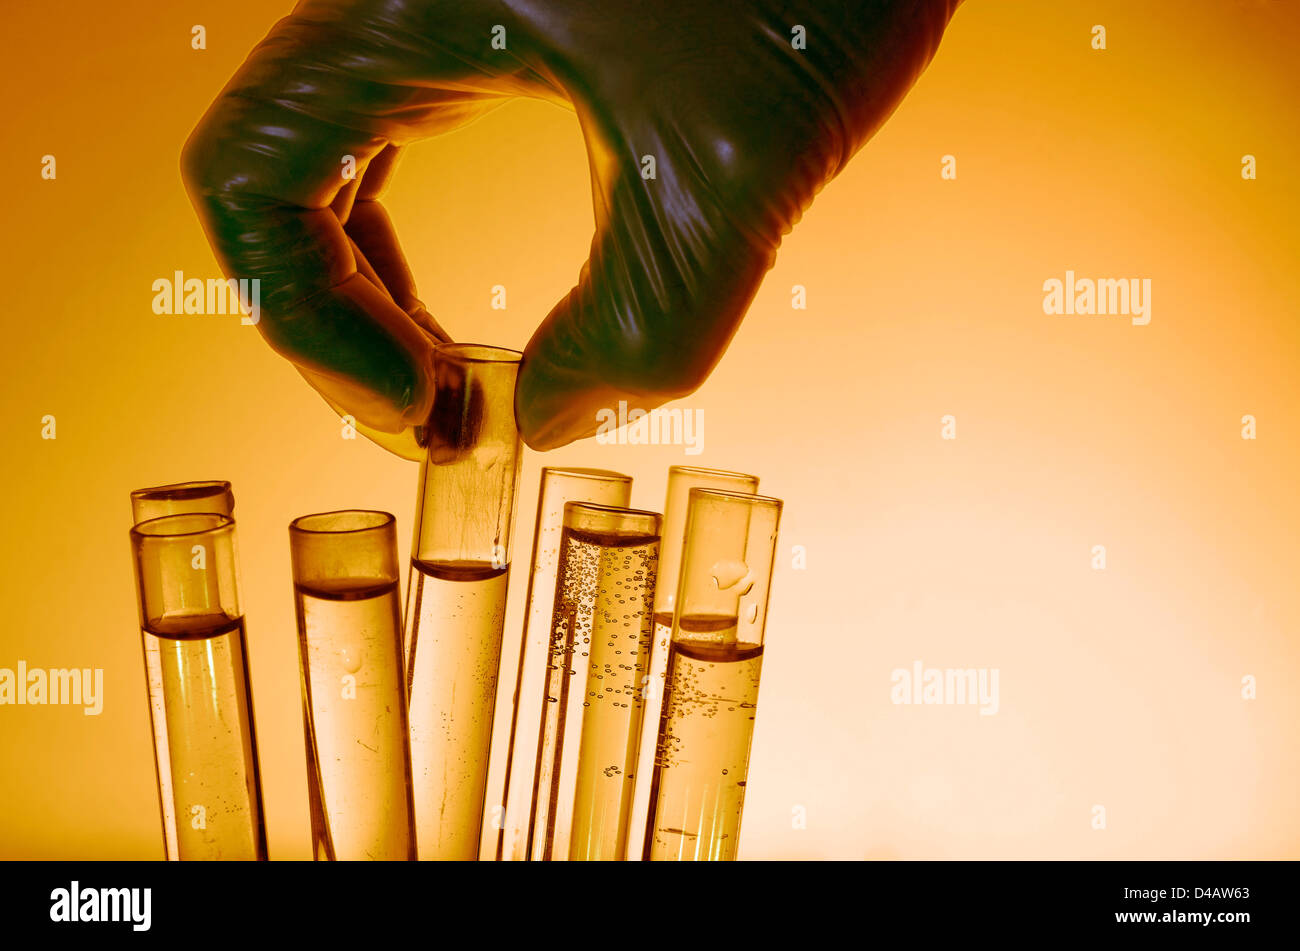 Researcher's hand silhouetted in laboratory - Stock Image